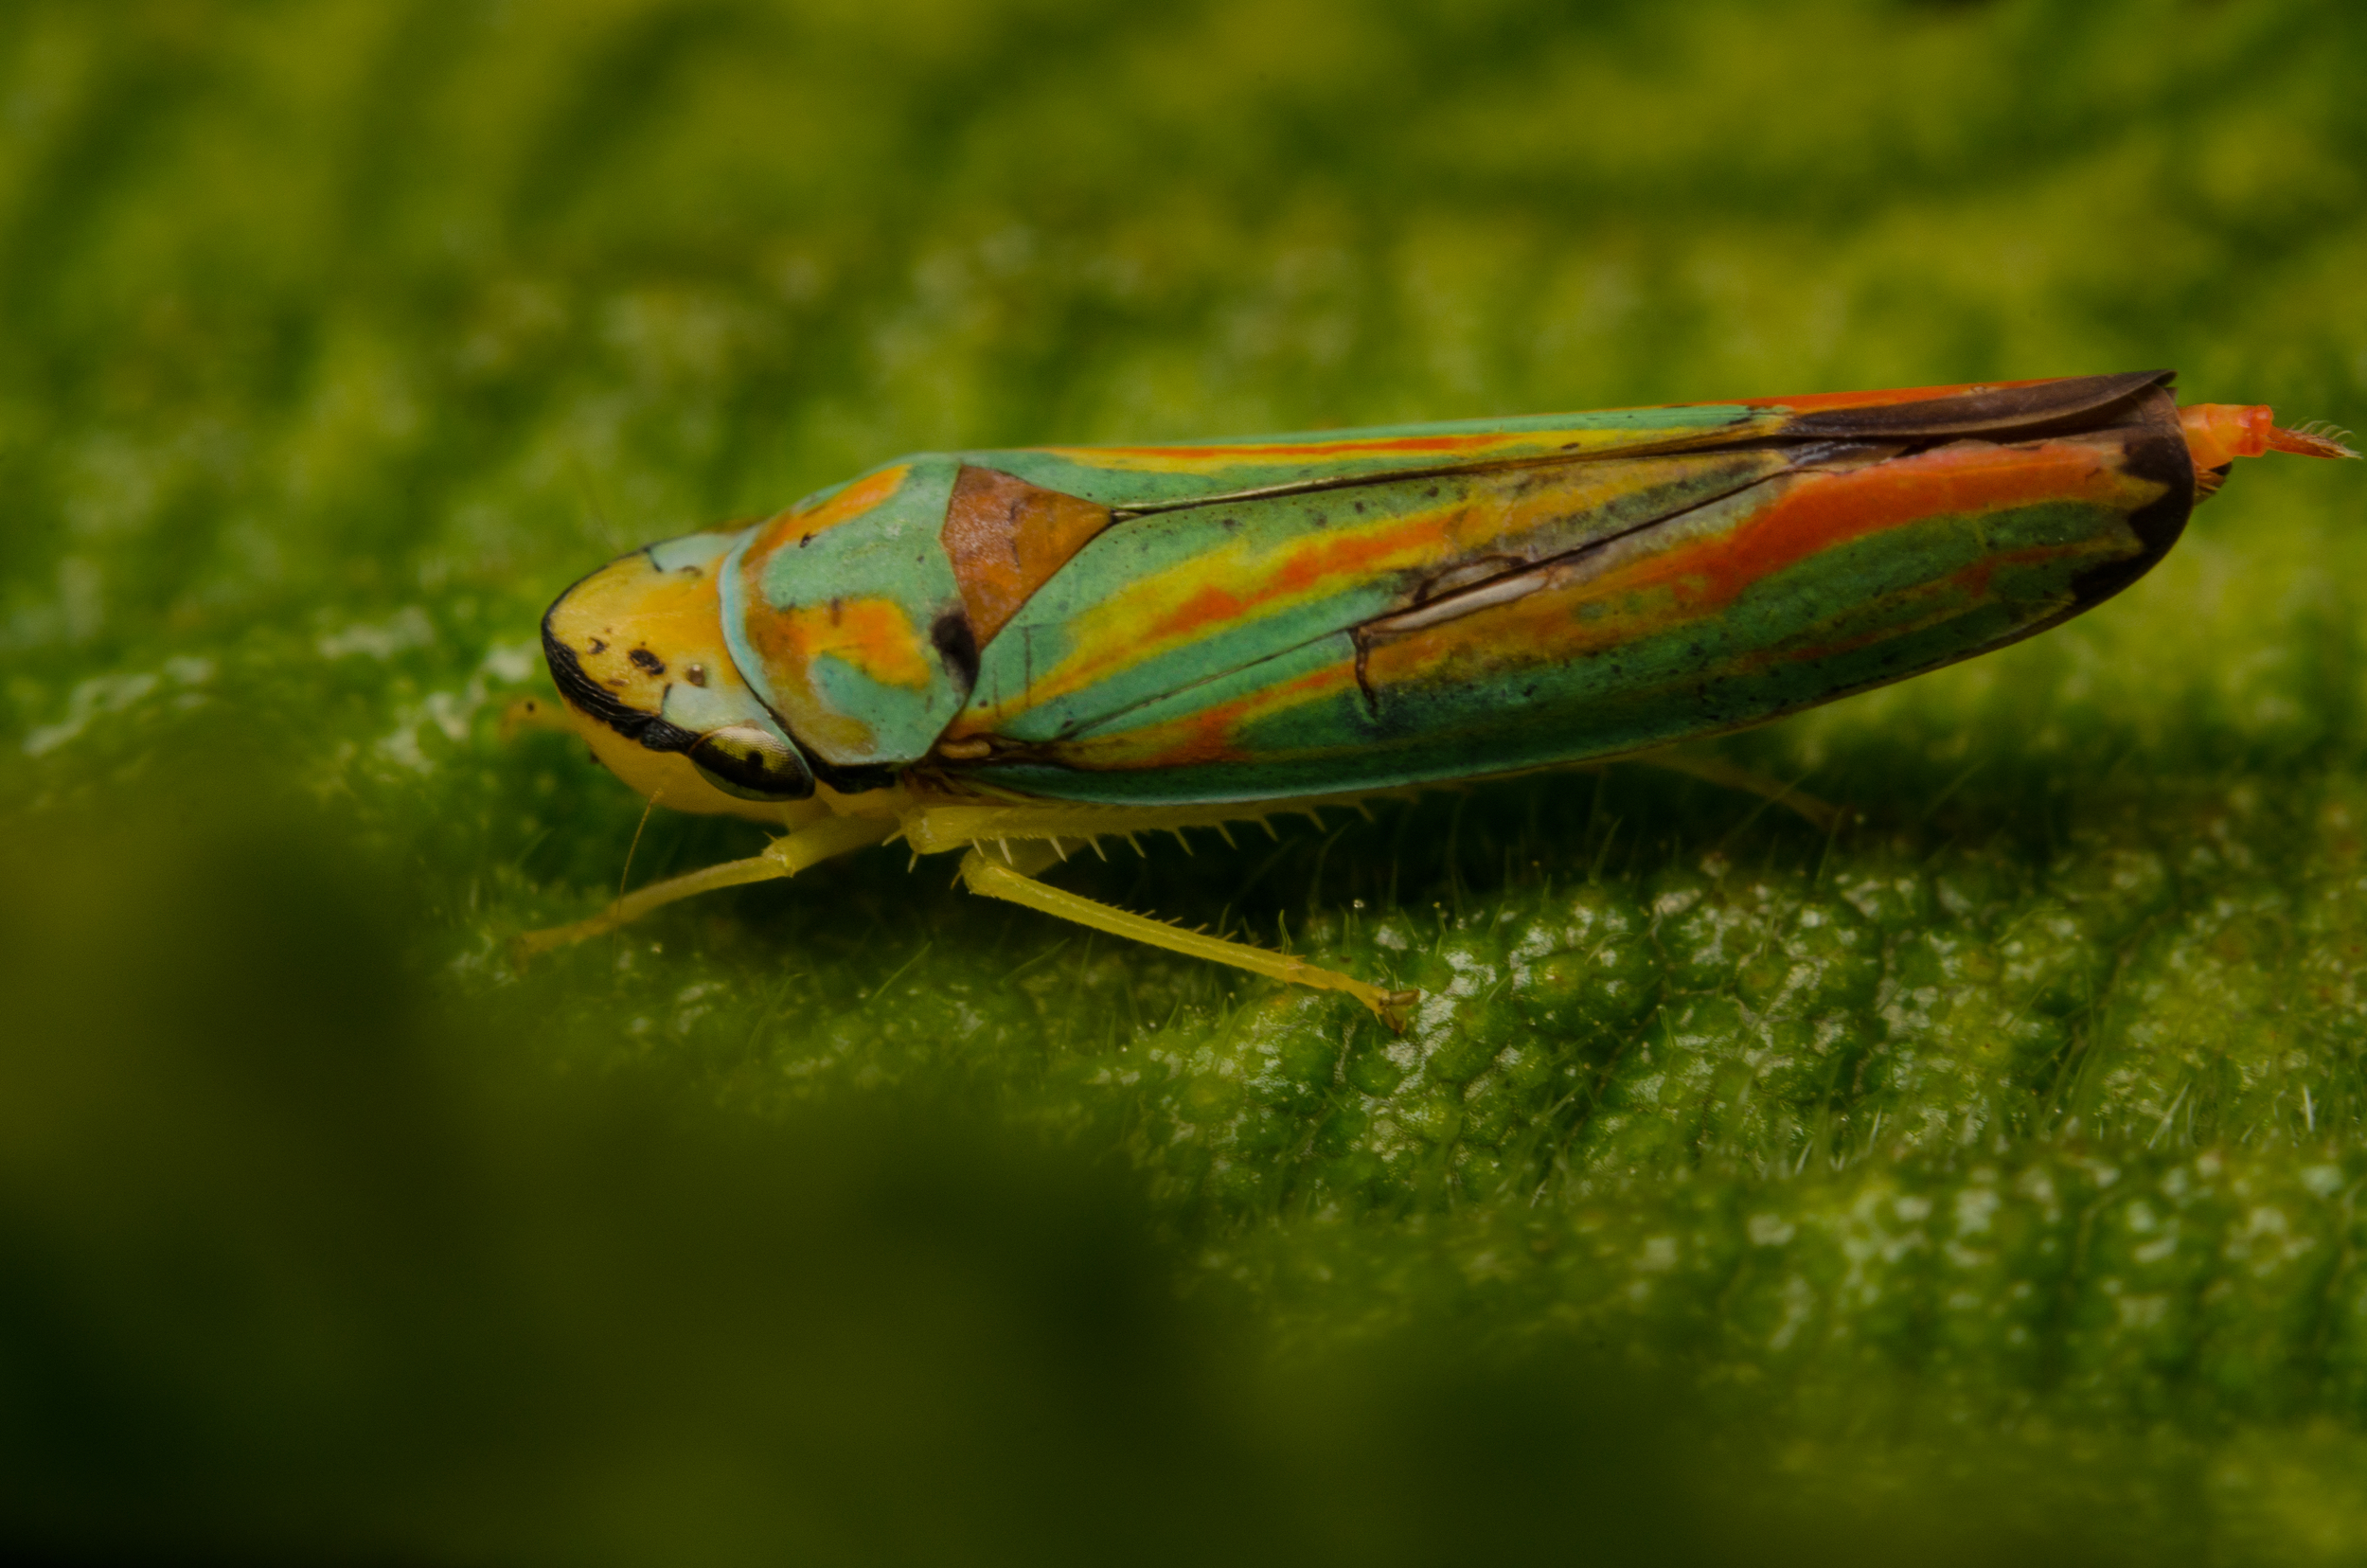 Scarlet and Green Leafhopper Nikon D7000 ISO 200 f/11 1/125 sec. sec. Nikkor 50mm f/1.4 reversed with BR-2 Reversing Ring plus two PK-3 27mm extension tubes, off-camera flash with modified soft box.